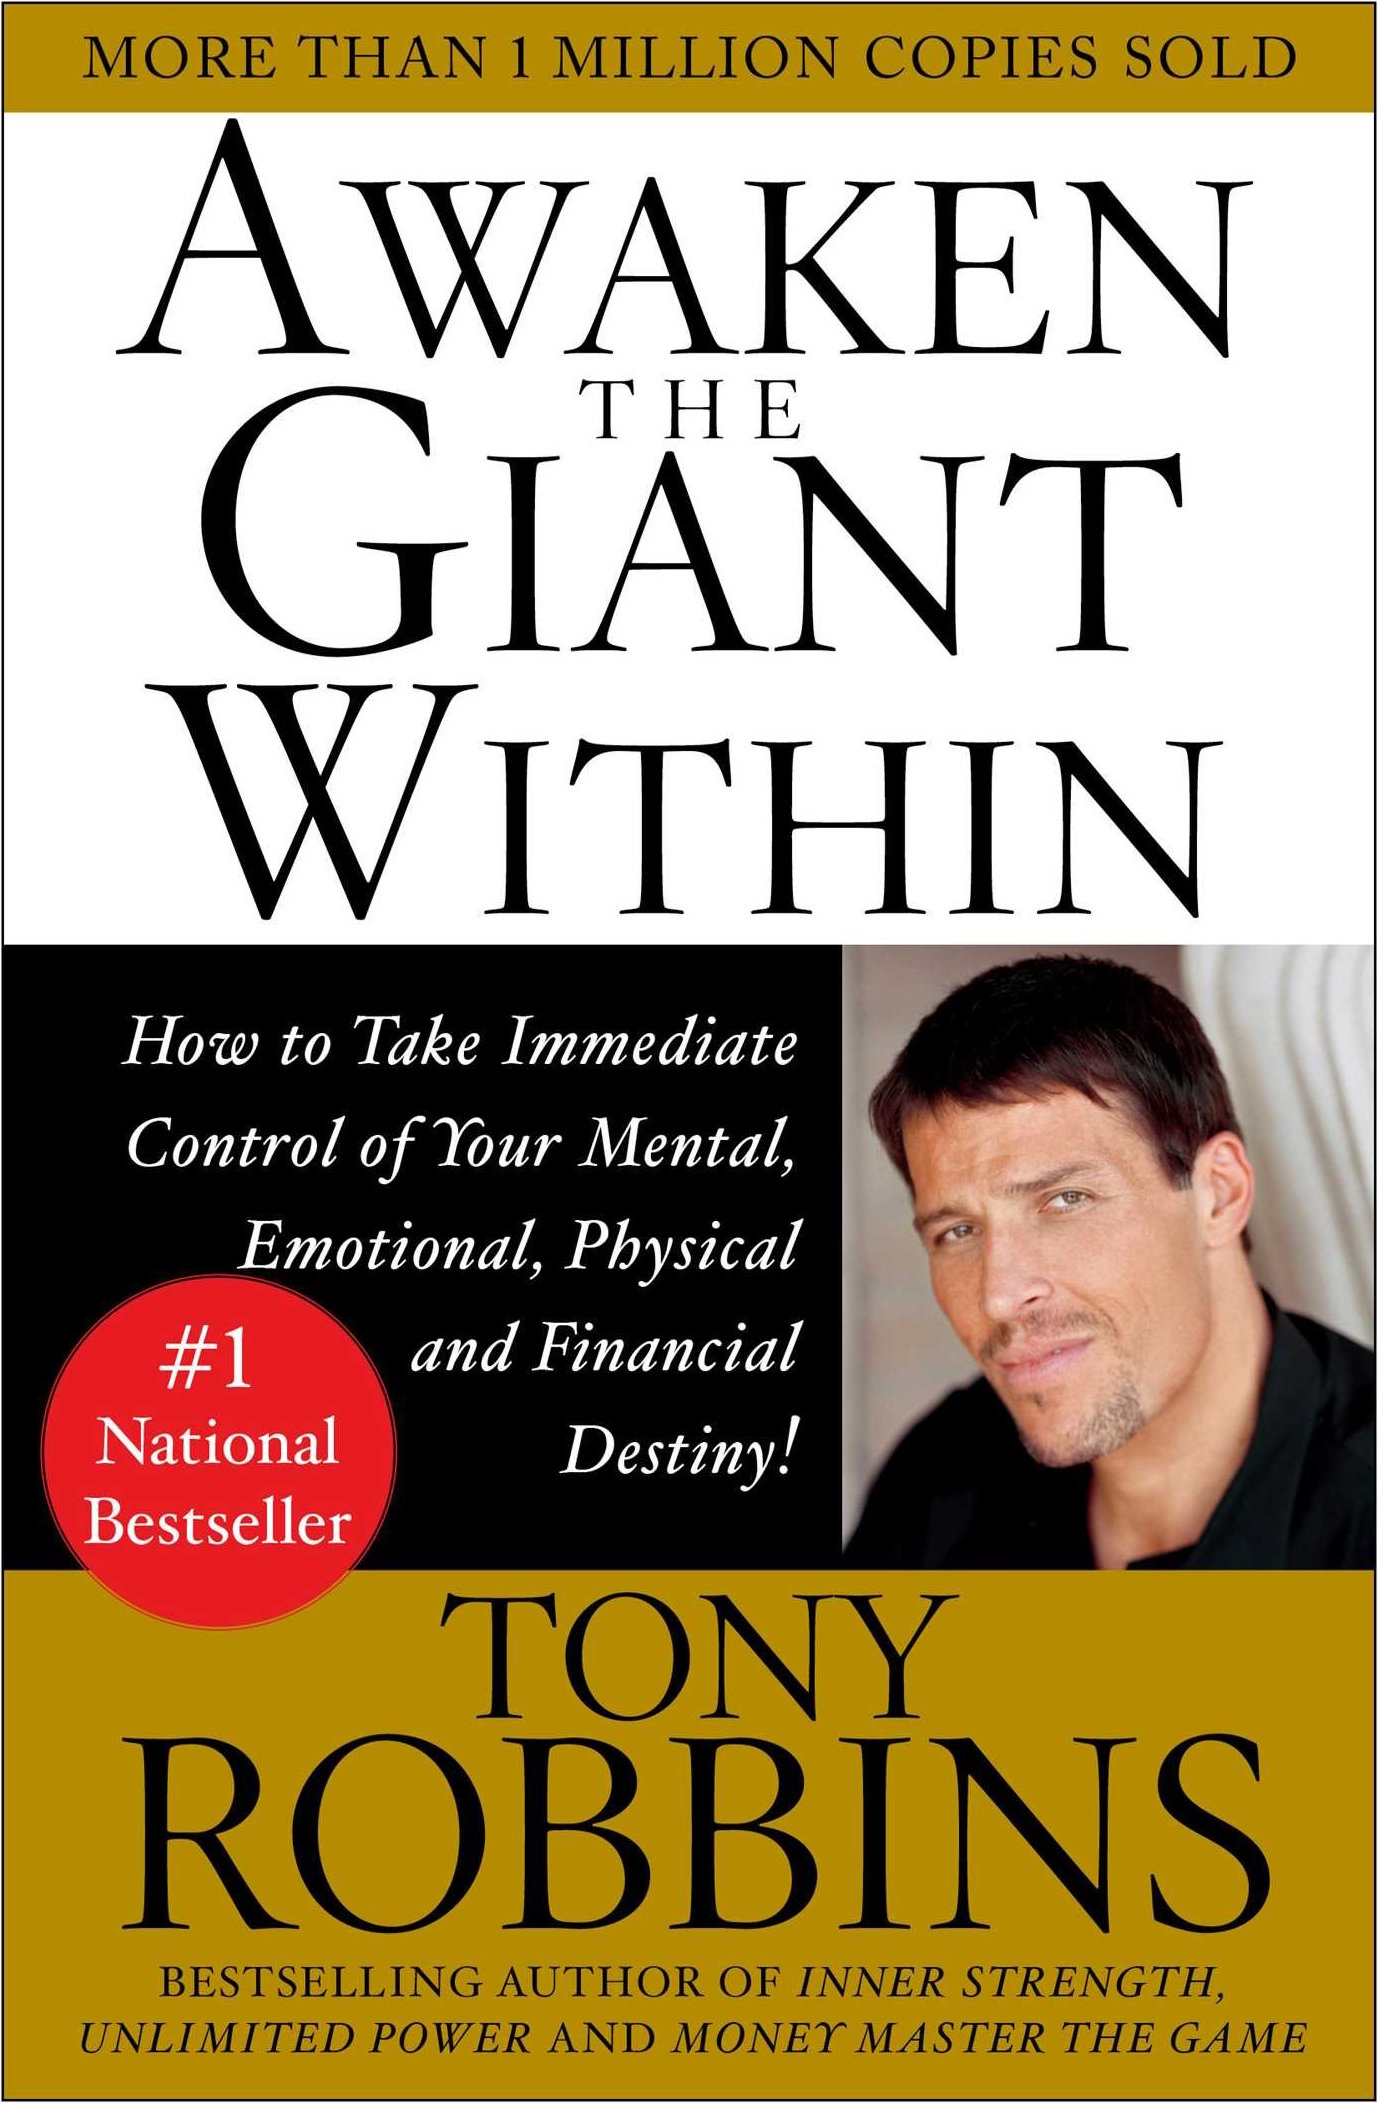 awaken the giant within - by Anthony RobbinsAnthony Robbins, the nation's leader in the science of peak performance, shows you his most effective strategies and techniques for mastering your emotions, your body, your relationships, your finances, and your life. The acknowledged expert in the psychology of change, Anthony Robbins provides a step-by-step program teaching the fundamental lessons of self-mastery that will enable you to discover your true purpose, take control of your life and harness the forces that shape your destiny.